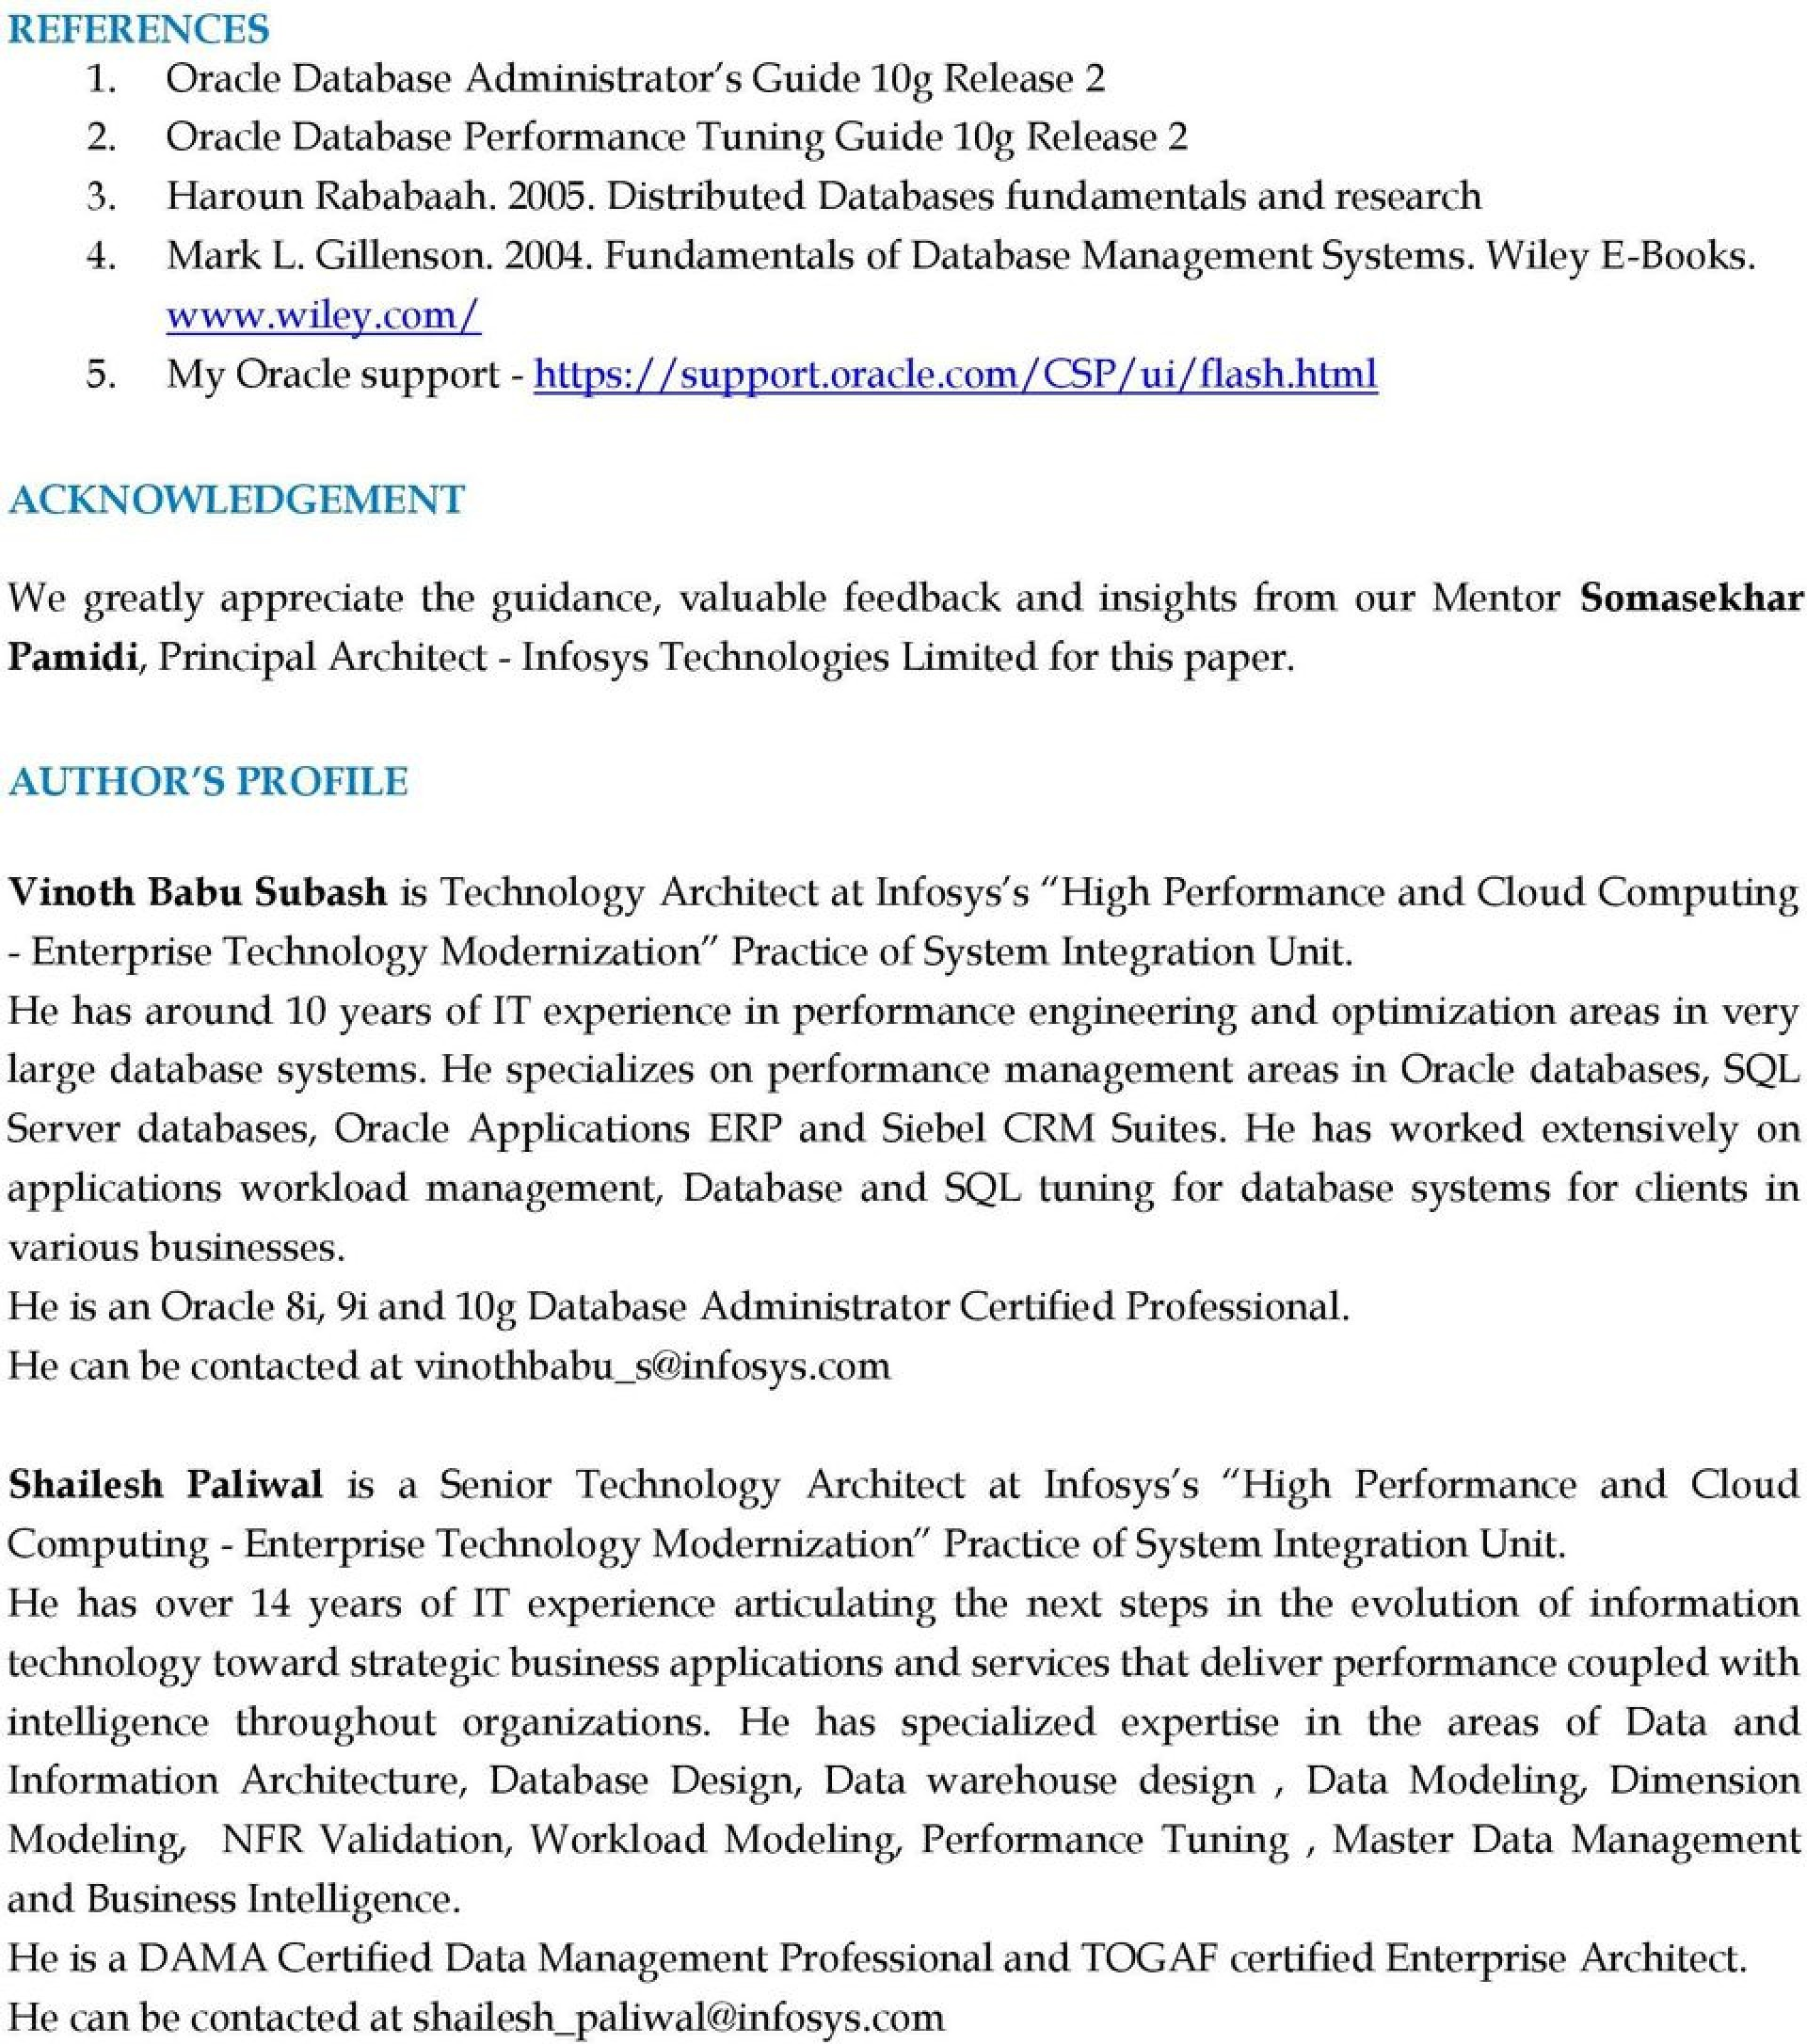 007 Database Research Paper Topics Page 14 Sensational Design Management On System 1920